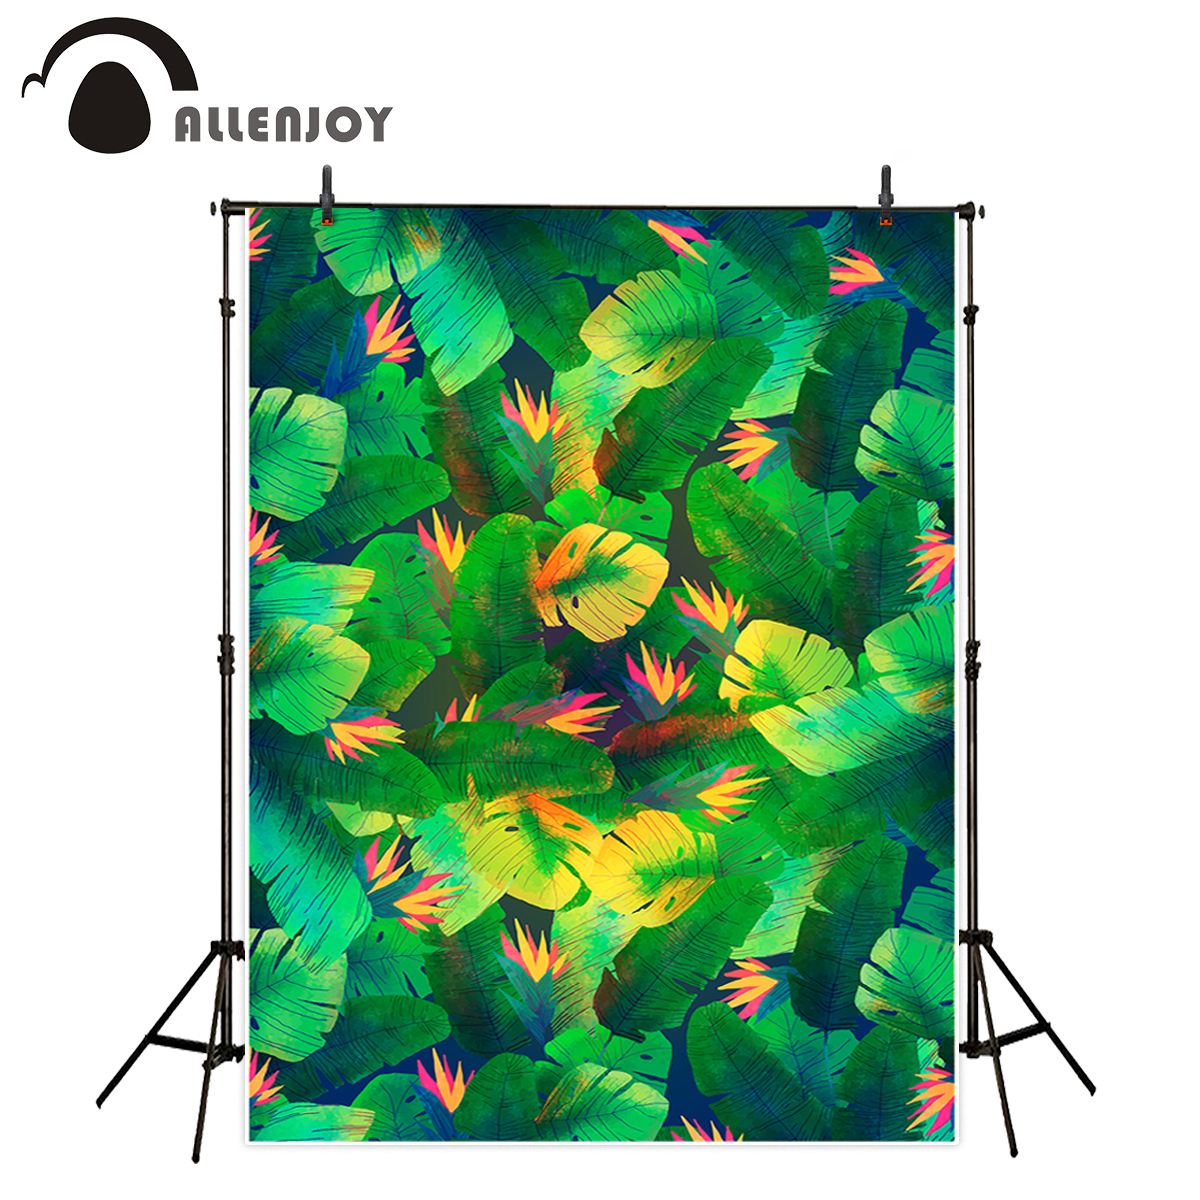 Allenjoy backgrounds for photography studio tropical green leaves flower room decoration backdrop photocall photo studio